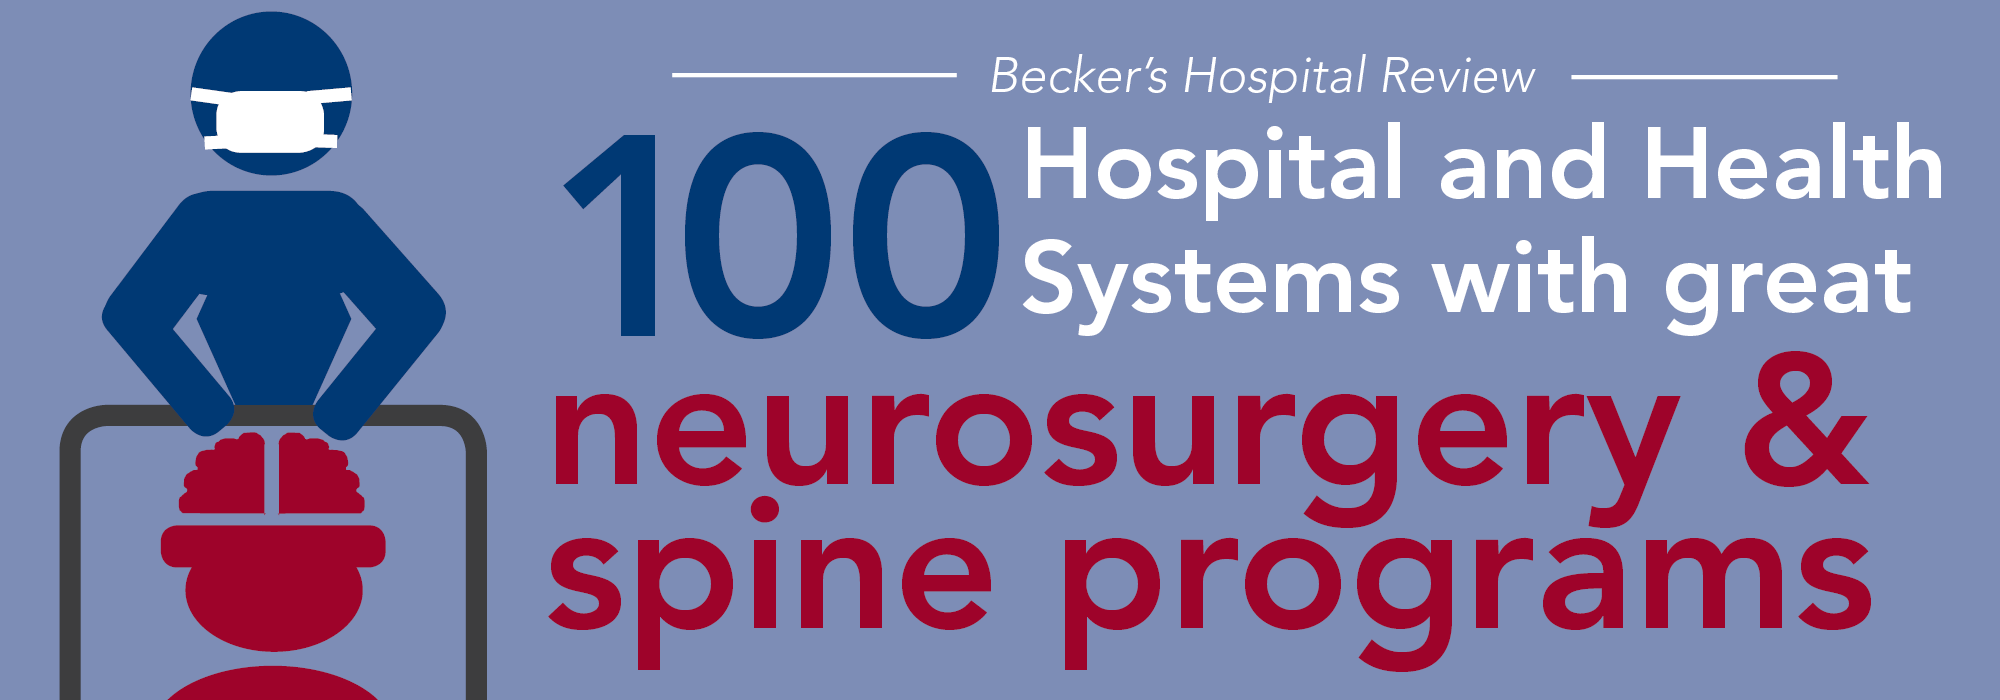 100 hospitals and health systems with great neurosurgery and